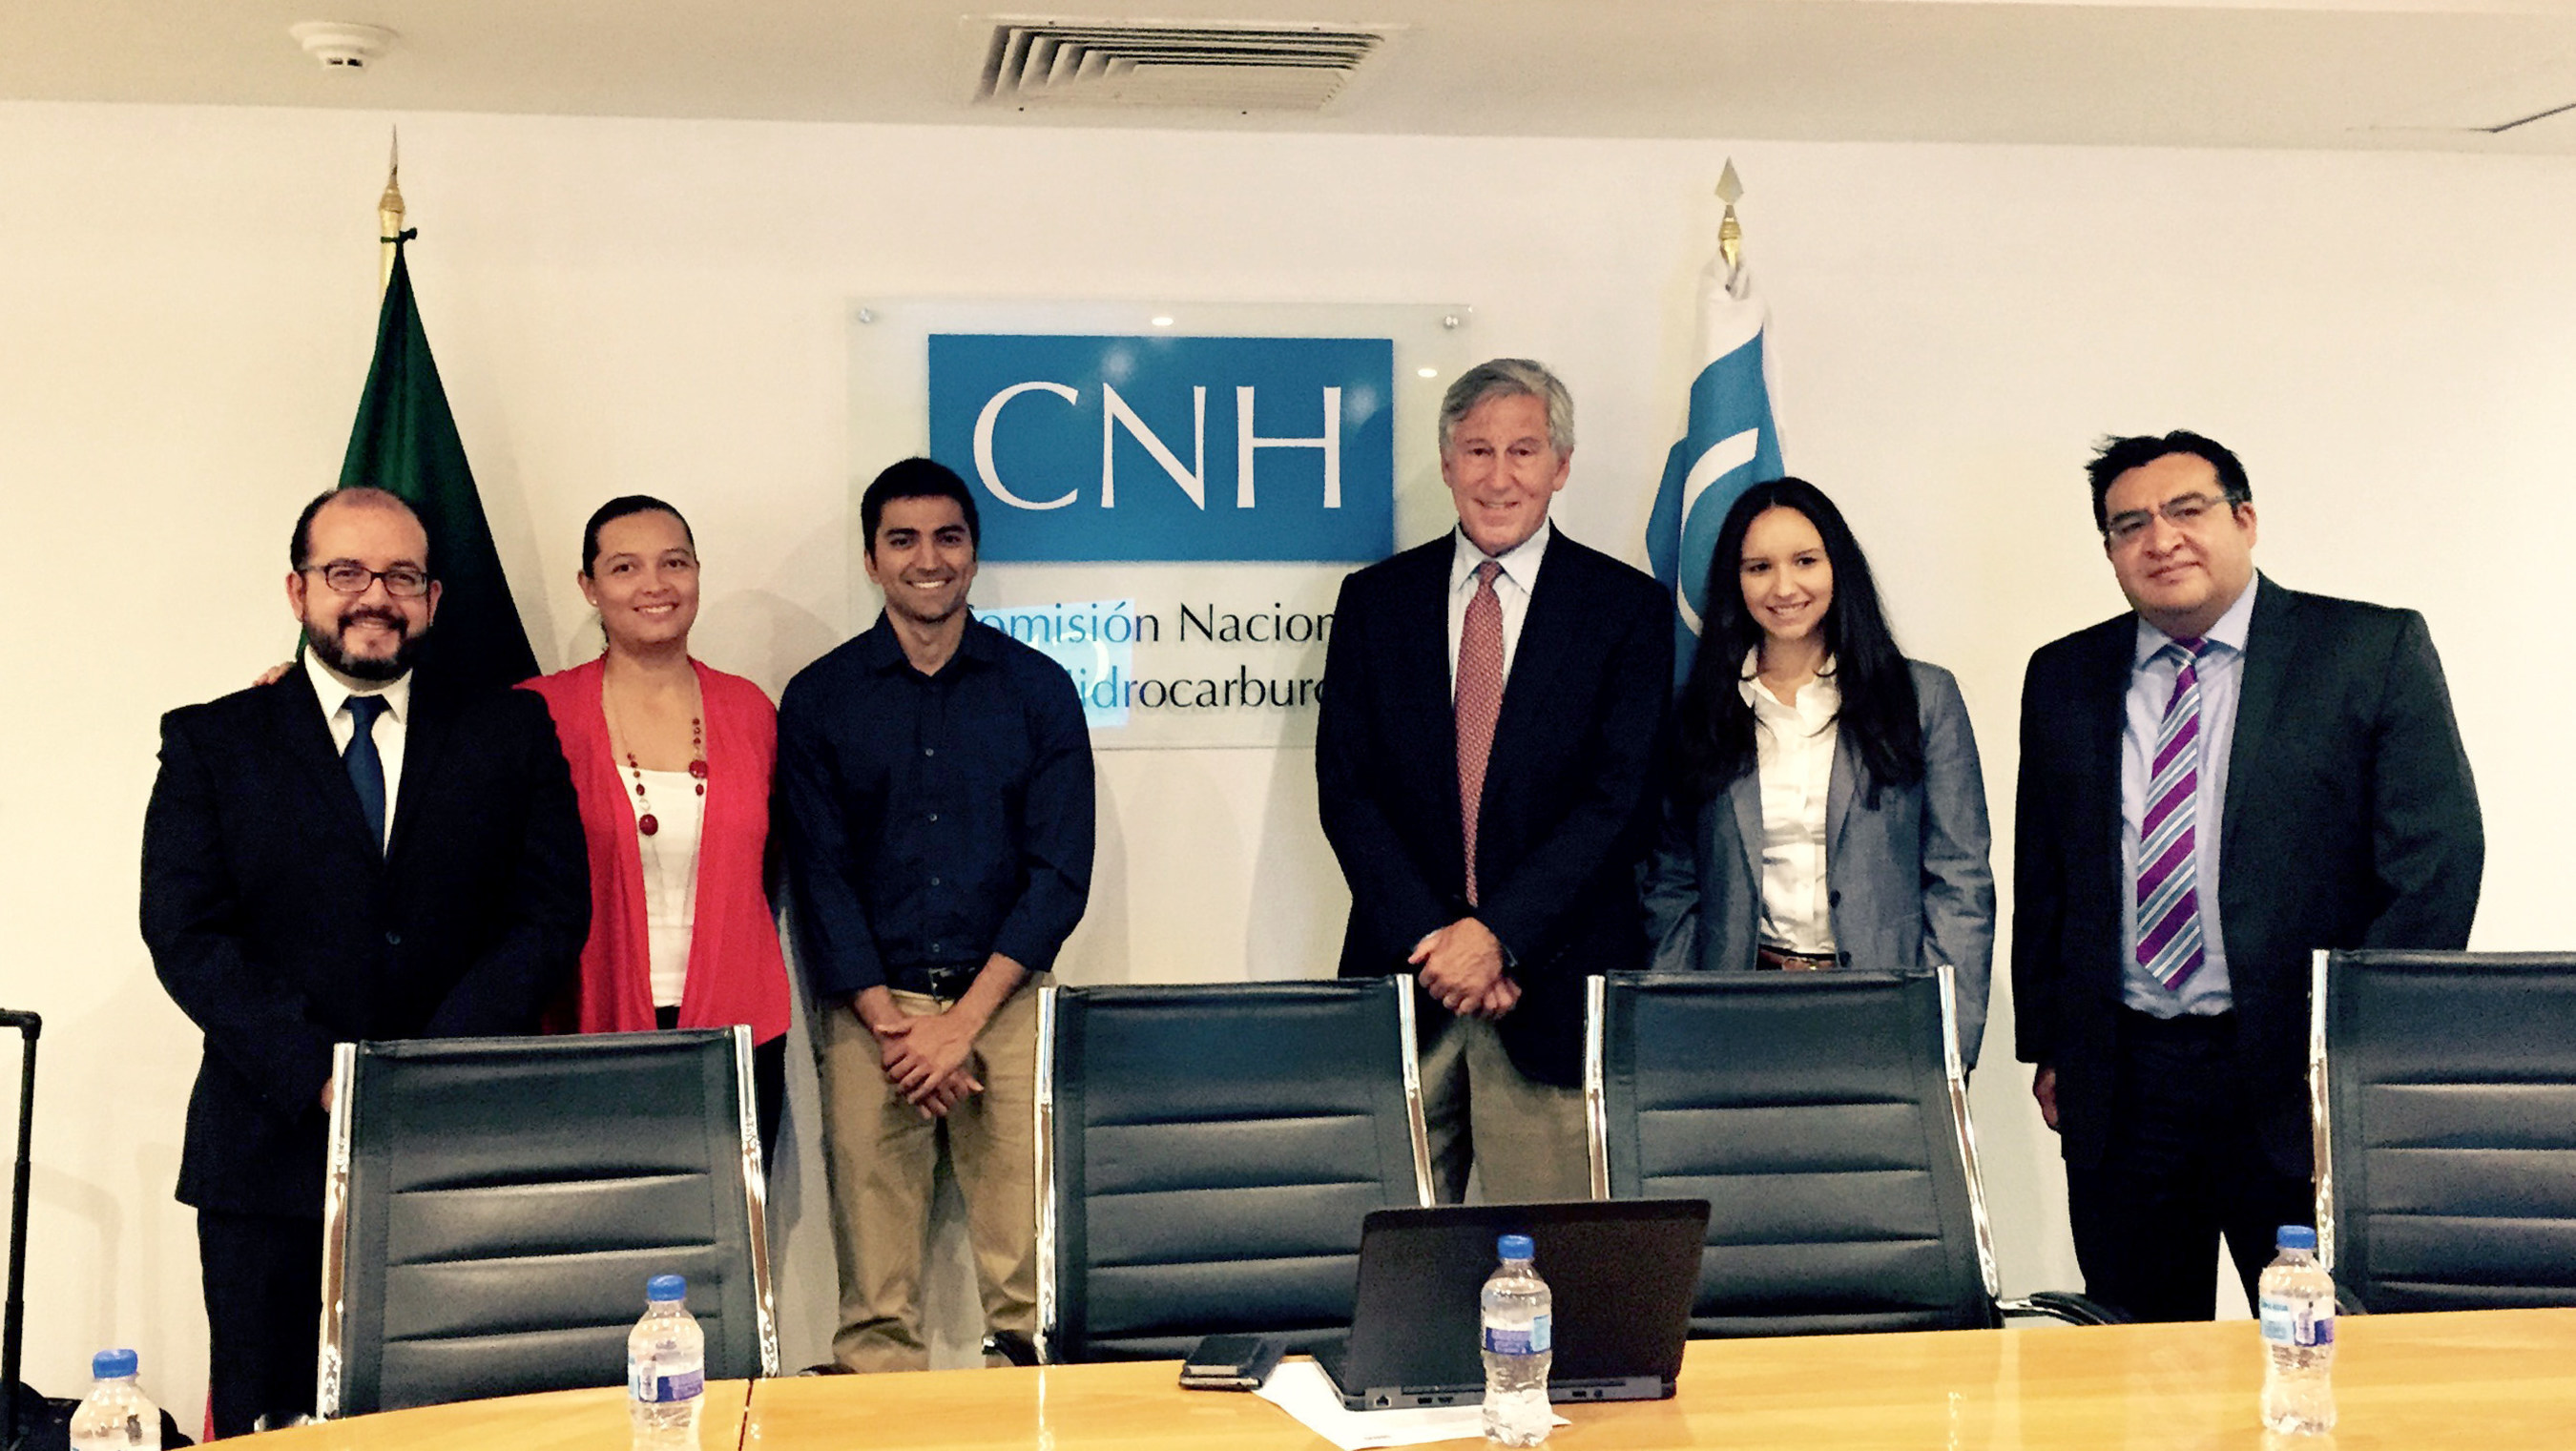 A new partnership between the University of Houston Law Center and Mexico's National Hydrocarbons Commission provides internships for law students in Mexico while offering legal expertise to Mexican officials. Participants in the announcement included: Pablo Enriquez, director of International Affairs, National Hydrocarbons Commission (CNH); Carla Gabriela Gonzalez, executive secretary, National Hydrocarbons Commission; Nimroz Ali, J.D., CNH Extern, summer 2015; UH Professor Emeritus Stephen Zamora, executive director of the Center for U.S. and Mexican Law at the Law Center; Valentina Echeverri, LL.M., CNH Extern, summer 2015; and Enrique Silva, deputy general director of regulation, National Hydrocarbons Commission.